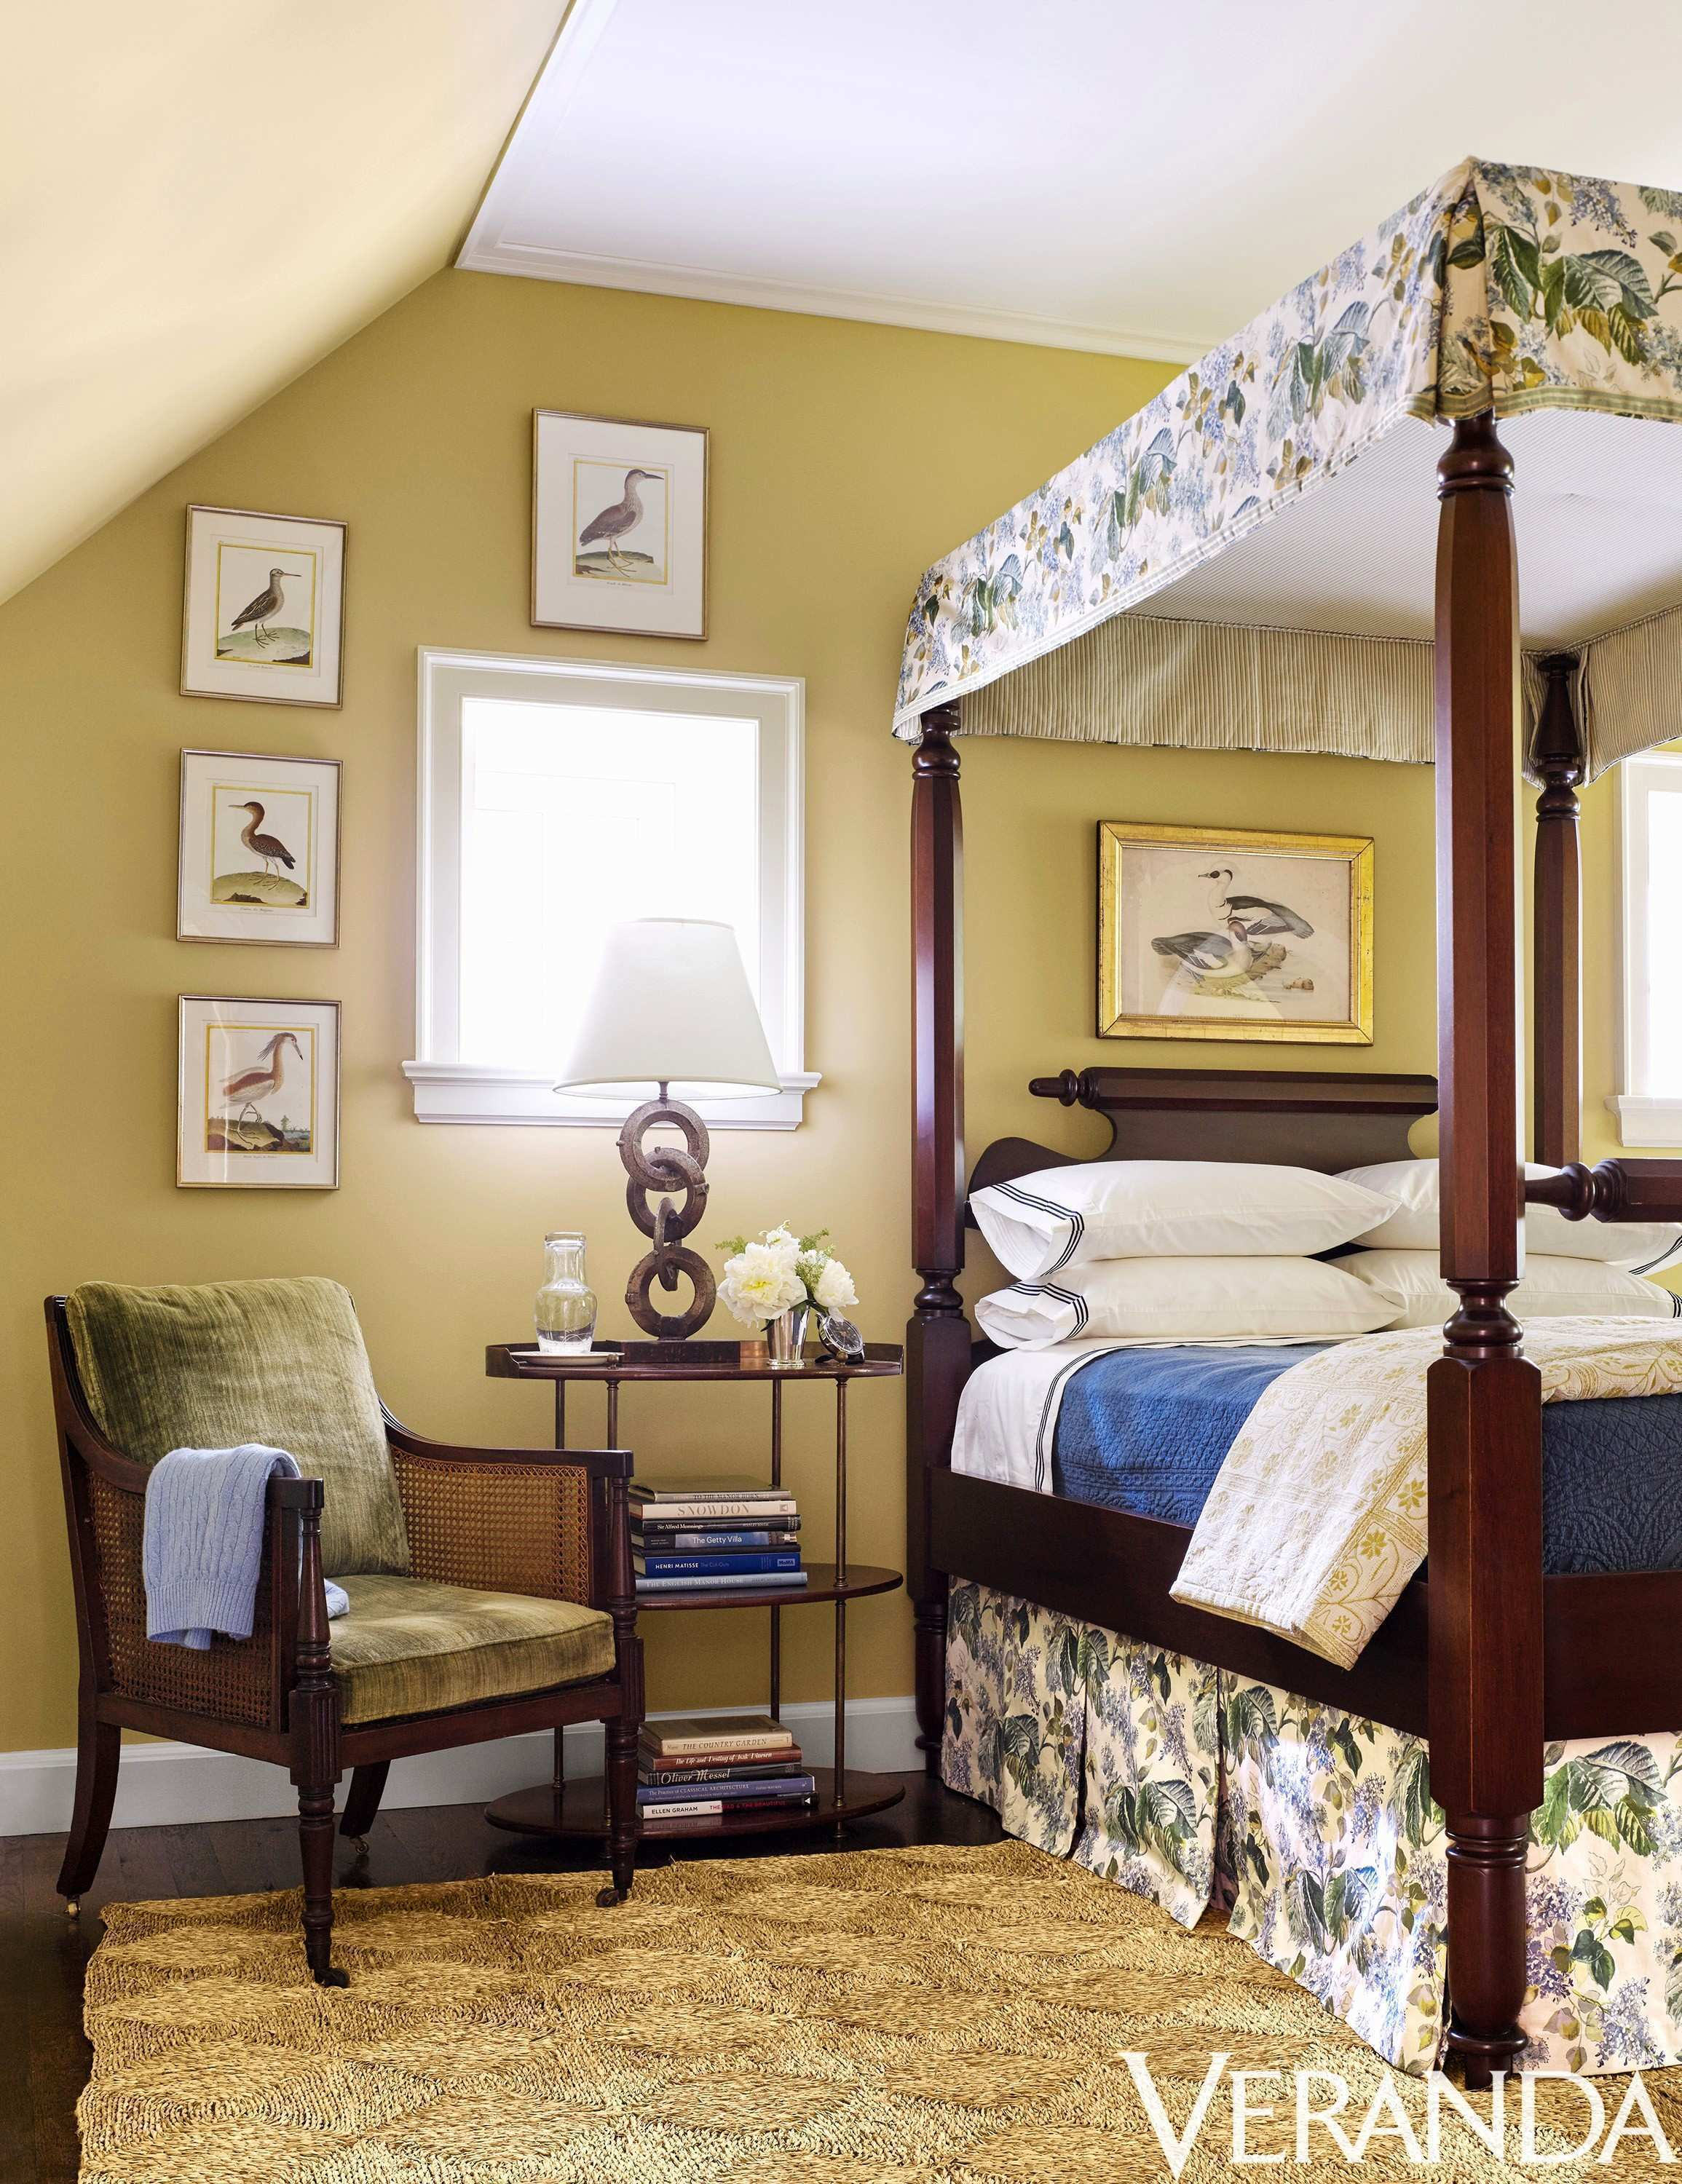 House Bed Frame Plans Wall Decal Luxury 1 Kirkland Wall Decor Home